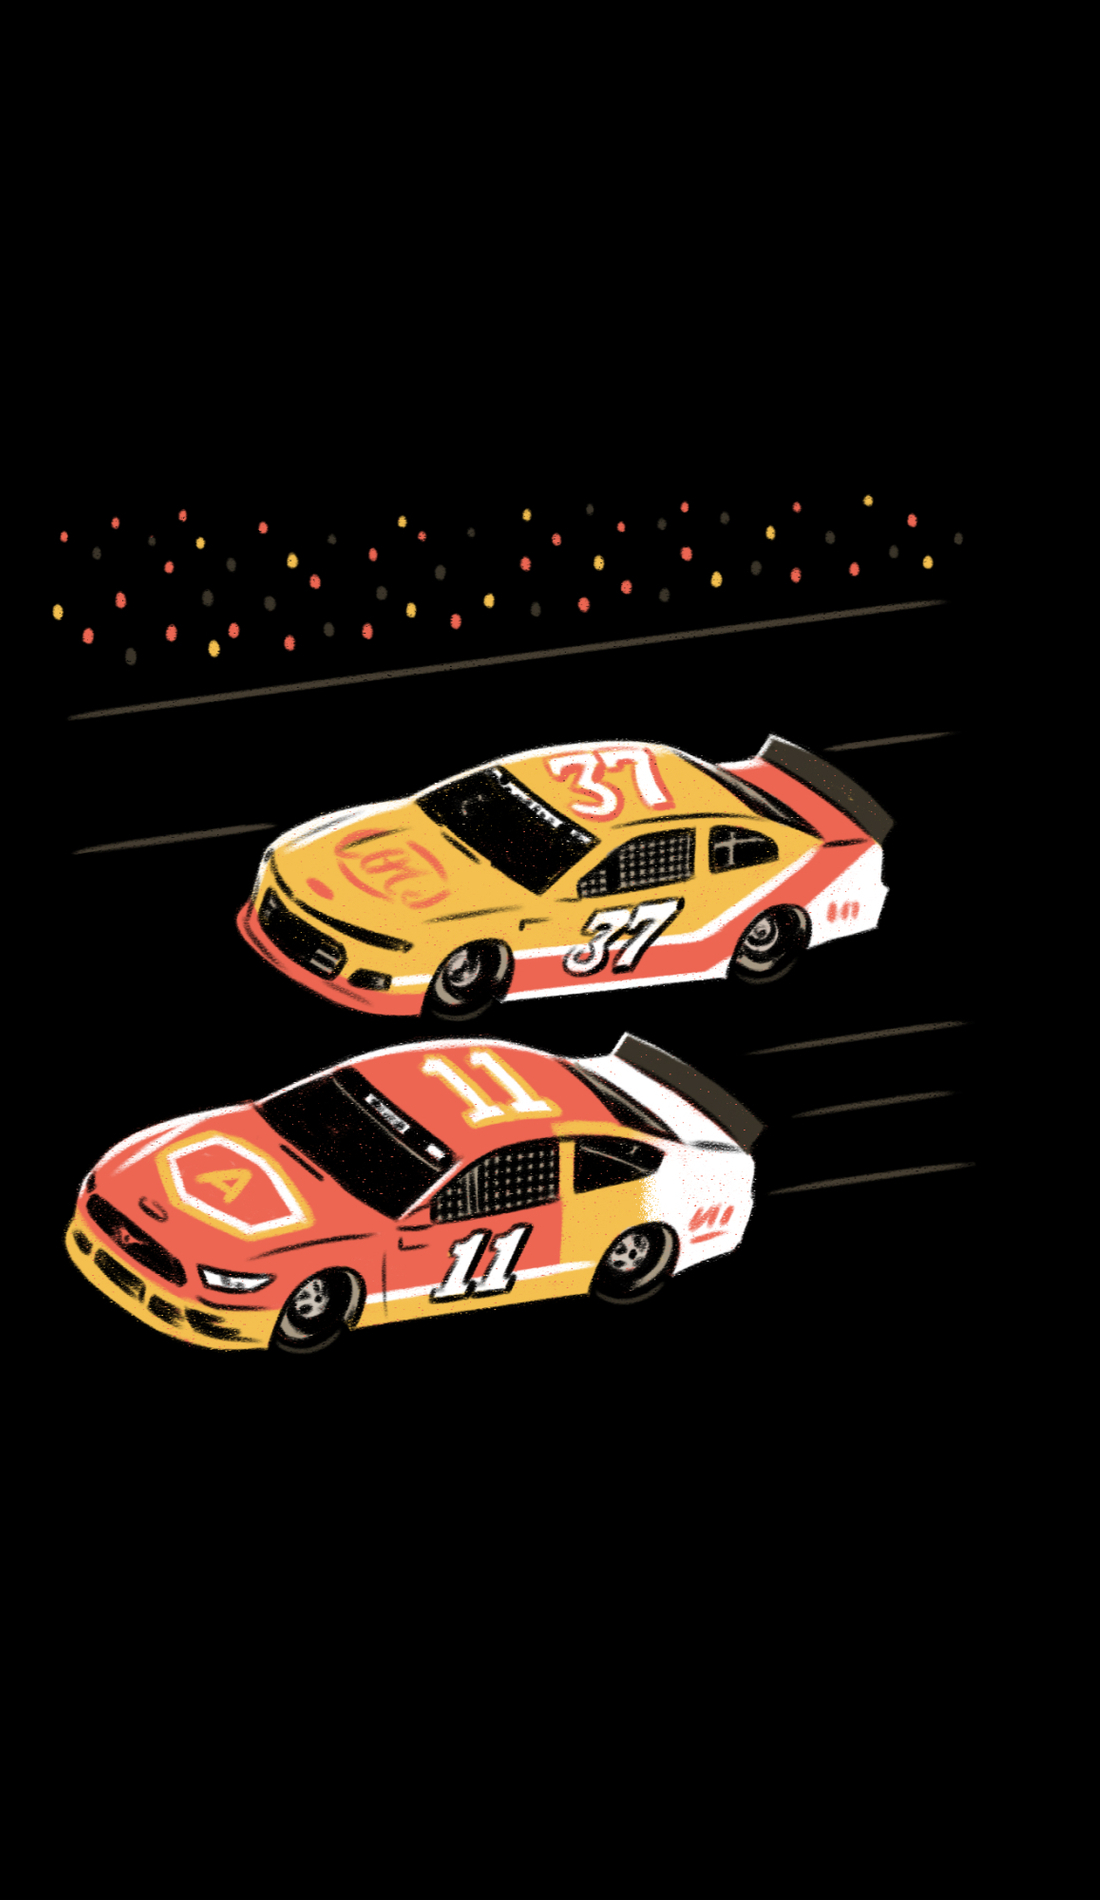 A Great Clips 200 live event